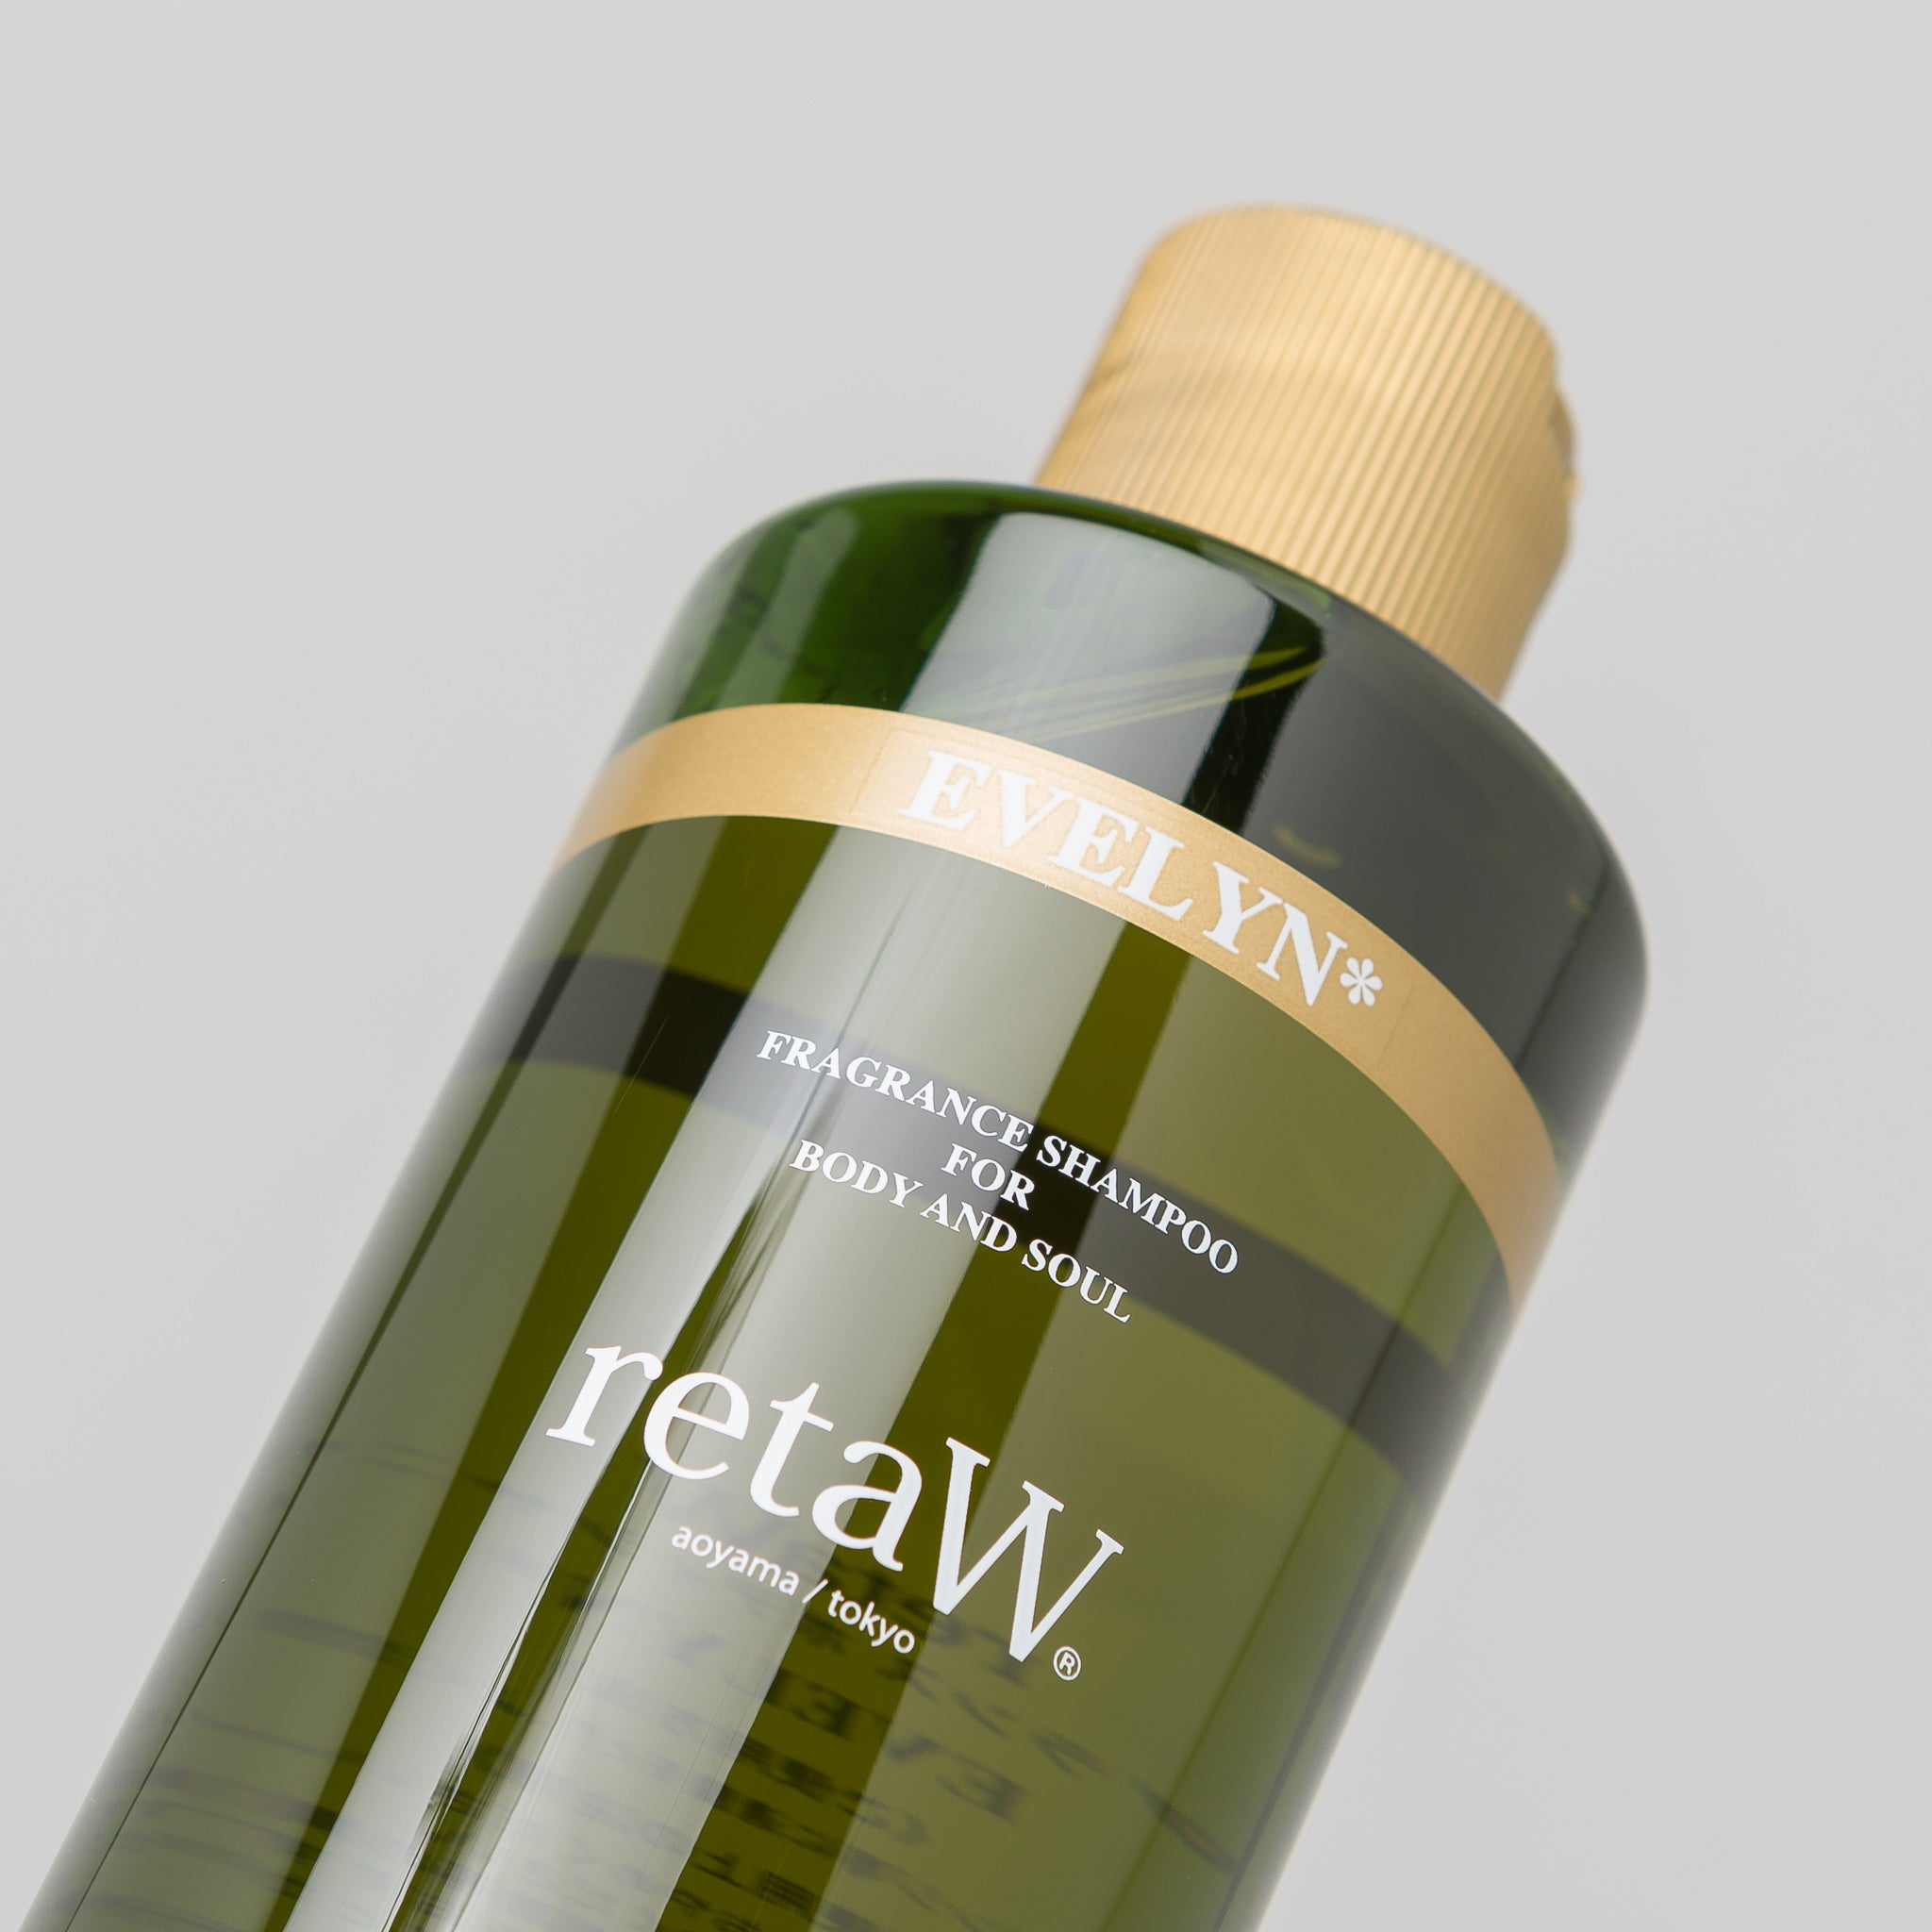 Fragrance Body Shampoo in Evelyn